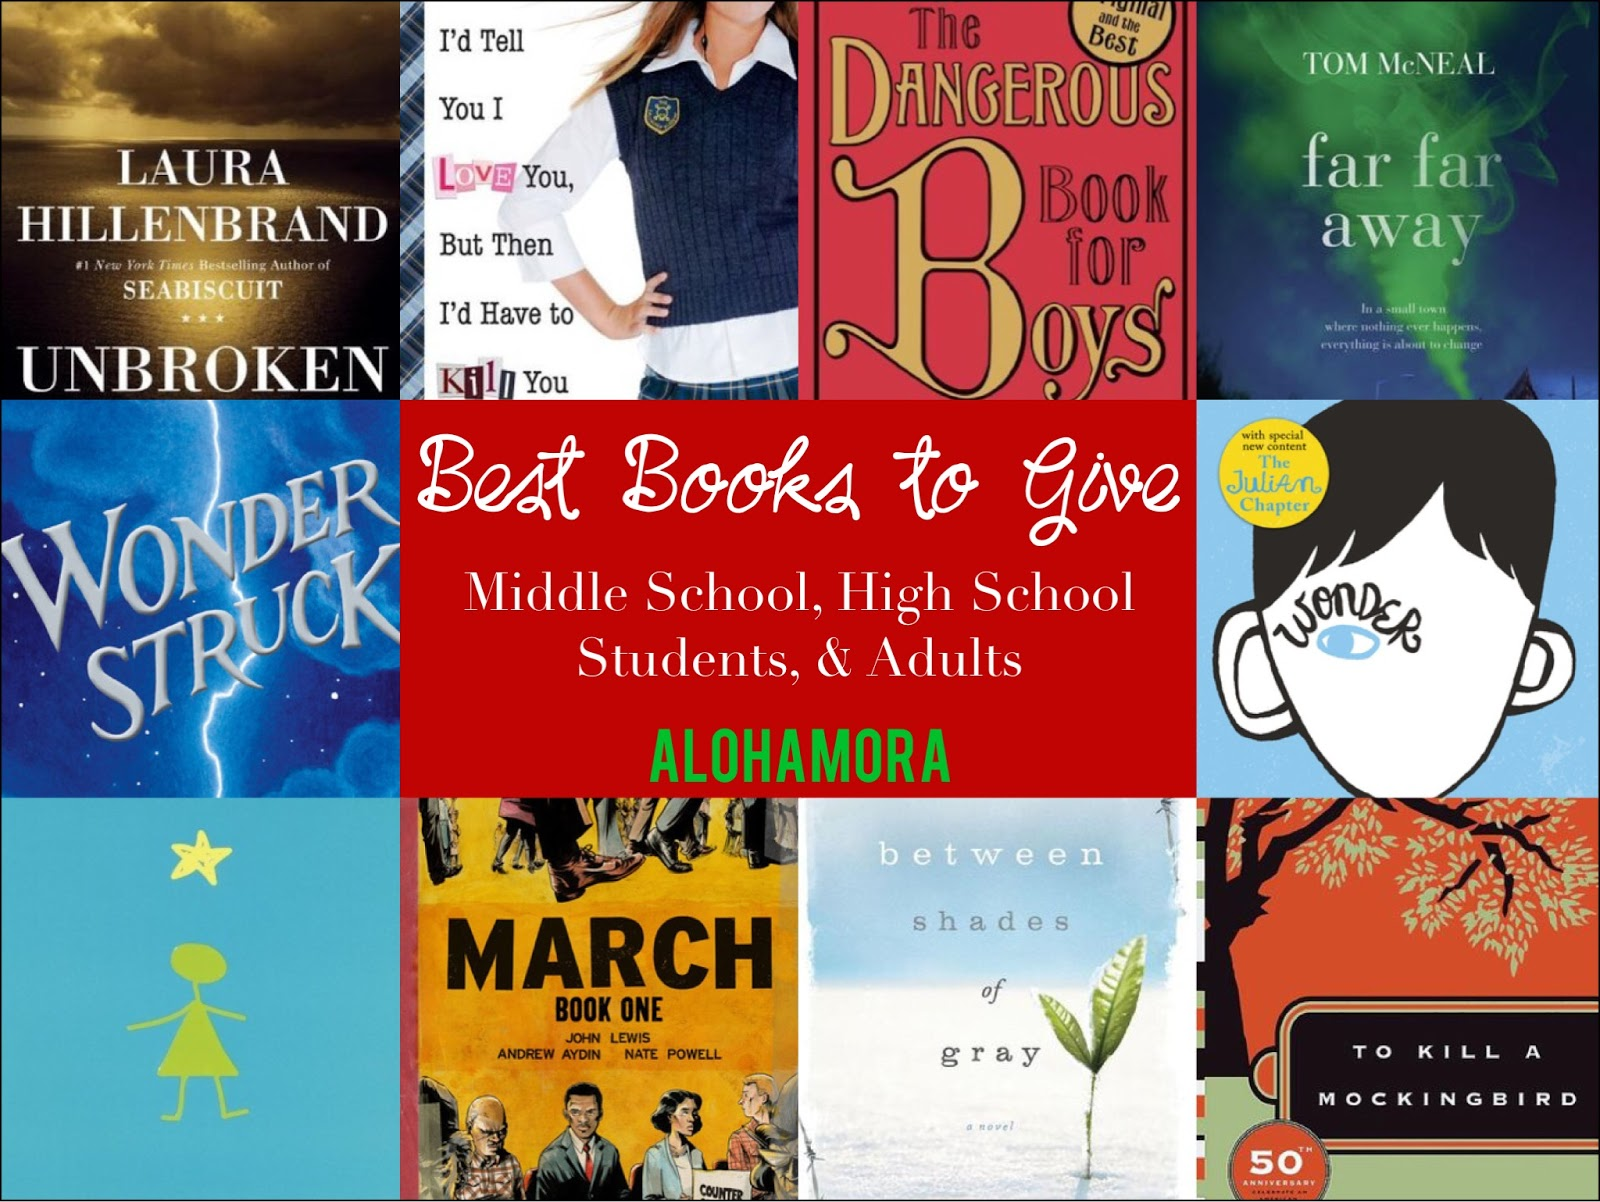 The best books to give middle school kids, high schoolers, teens, YAs and adults.  Non-fiction, fiction, realistic fiction, graphic novels, classics, mysteries, historical fiction, and more found this book list. Alohamora Open a Book http://alohamoraopenabook.blogspot.com/